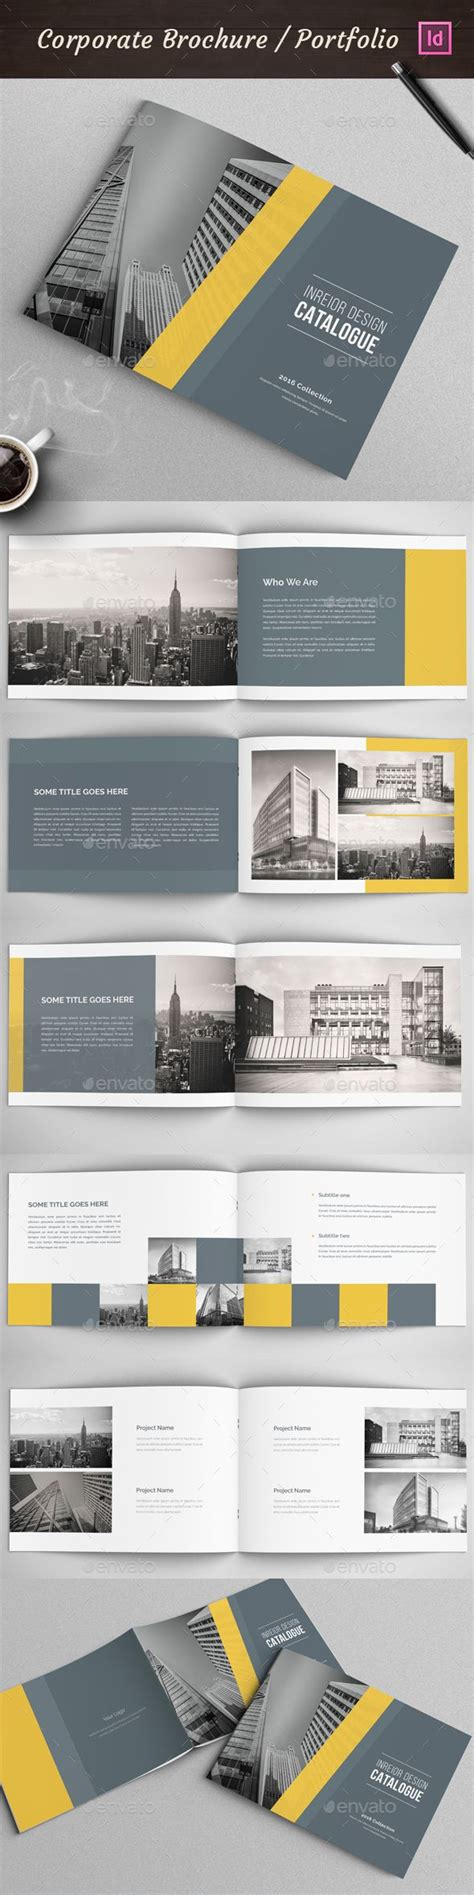 template plaquette indesign 25 best ideas about architecture portfolio layout on